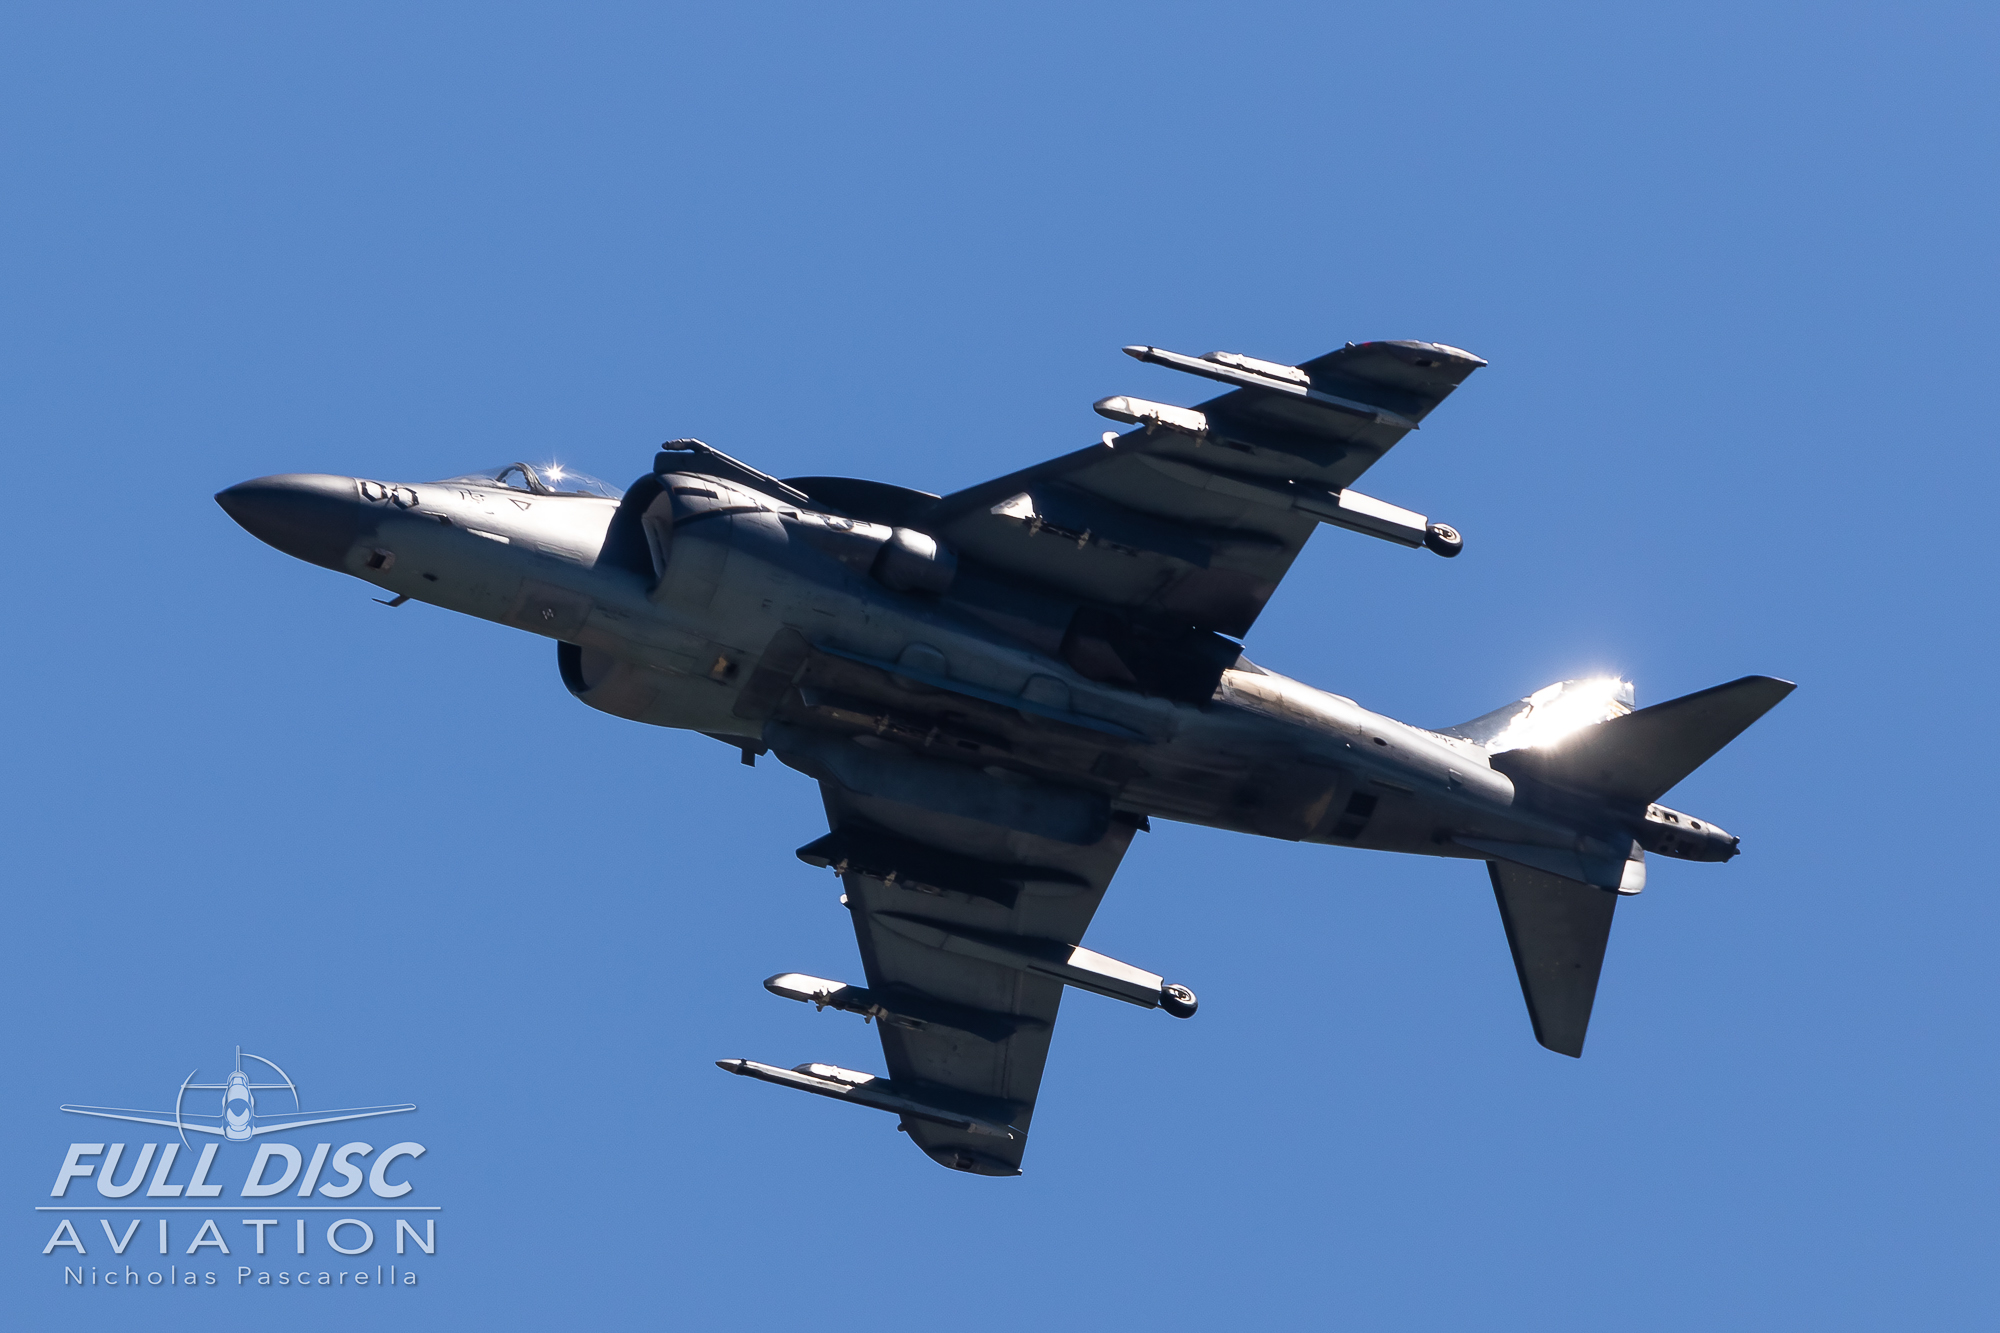 harrier_av8b_mcasbeaufort_nicholaspascarella_fulldiscavation_aviation_airshow.jpg